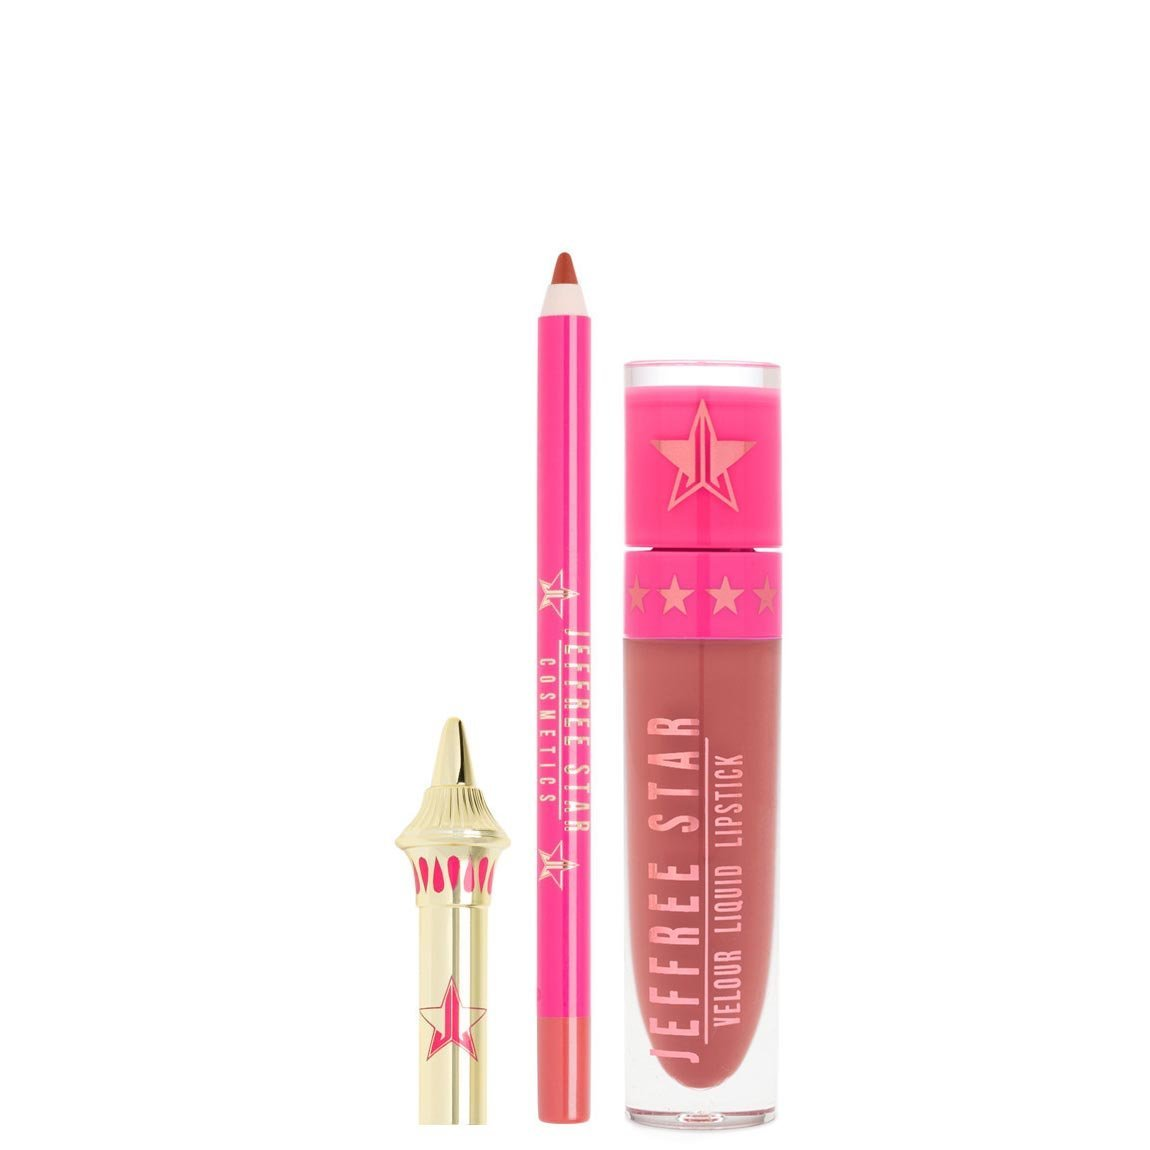 Jeffree Star Cosmetics Velour Lip Kit Allegedly